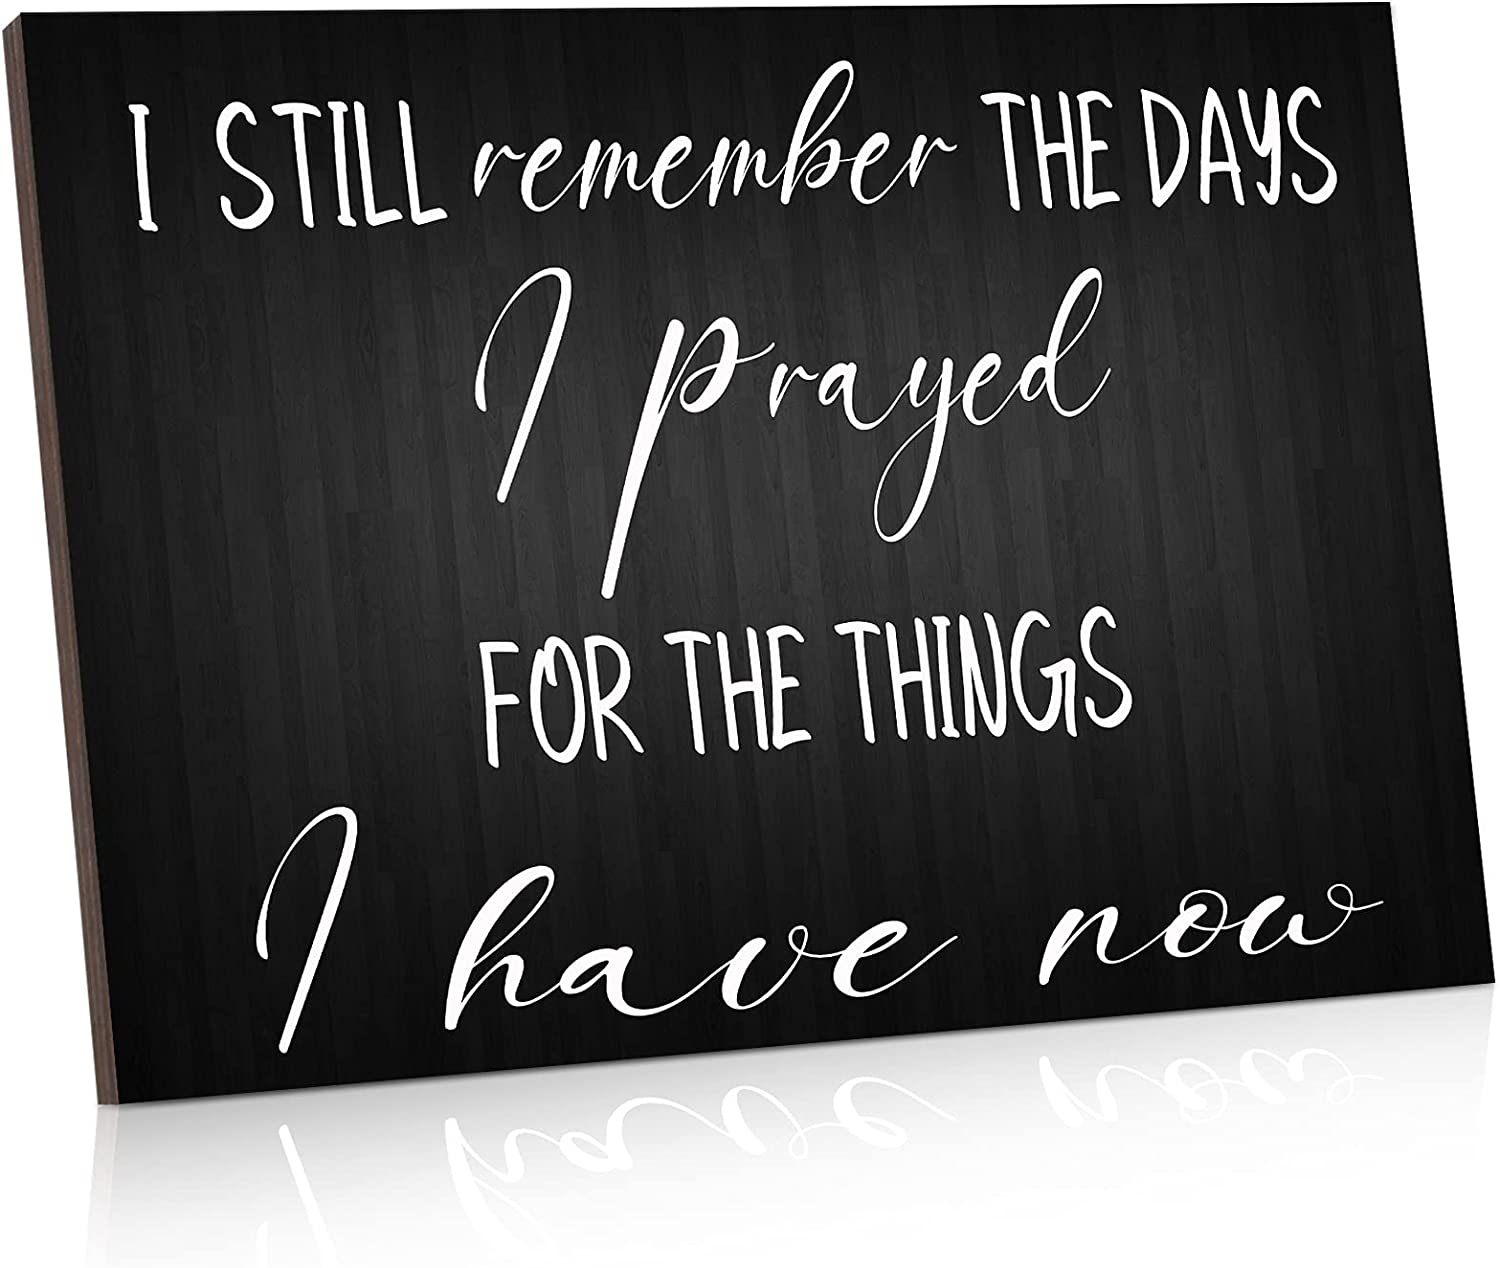 I Still Remember the Days I Prayed Wooden Hanging Wall Plaque Christian Wall Art Decor Inspirational Home Motivational Wood Decor for Living Room Bedroom Kitchen Meditation Room, 10 x 6 x 0.2 Inch